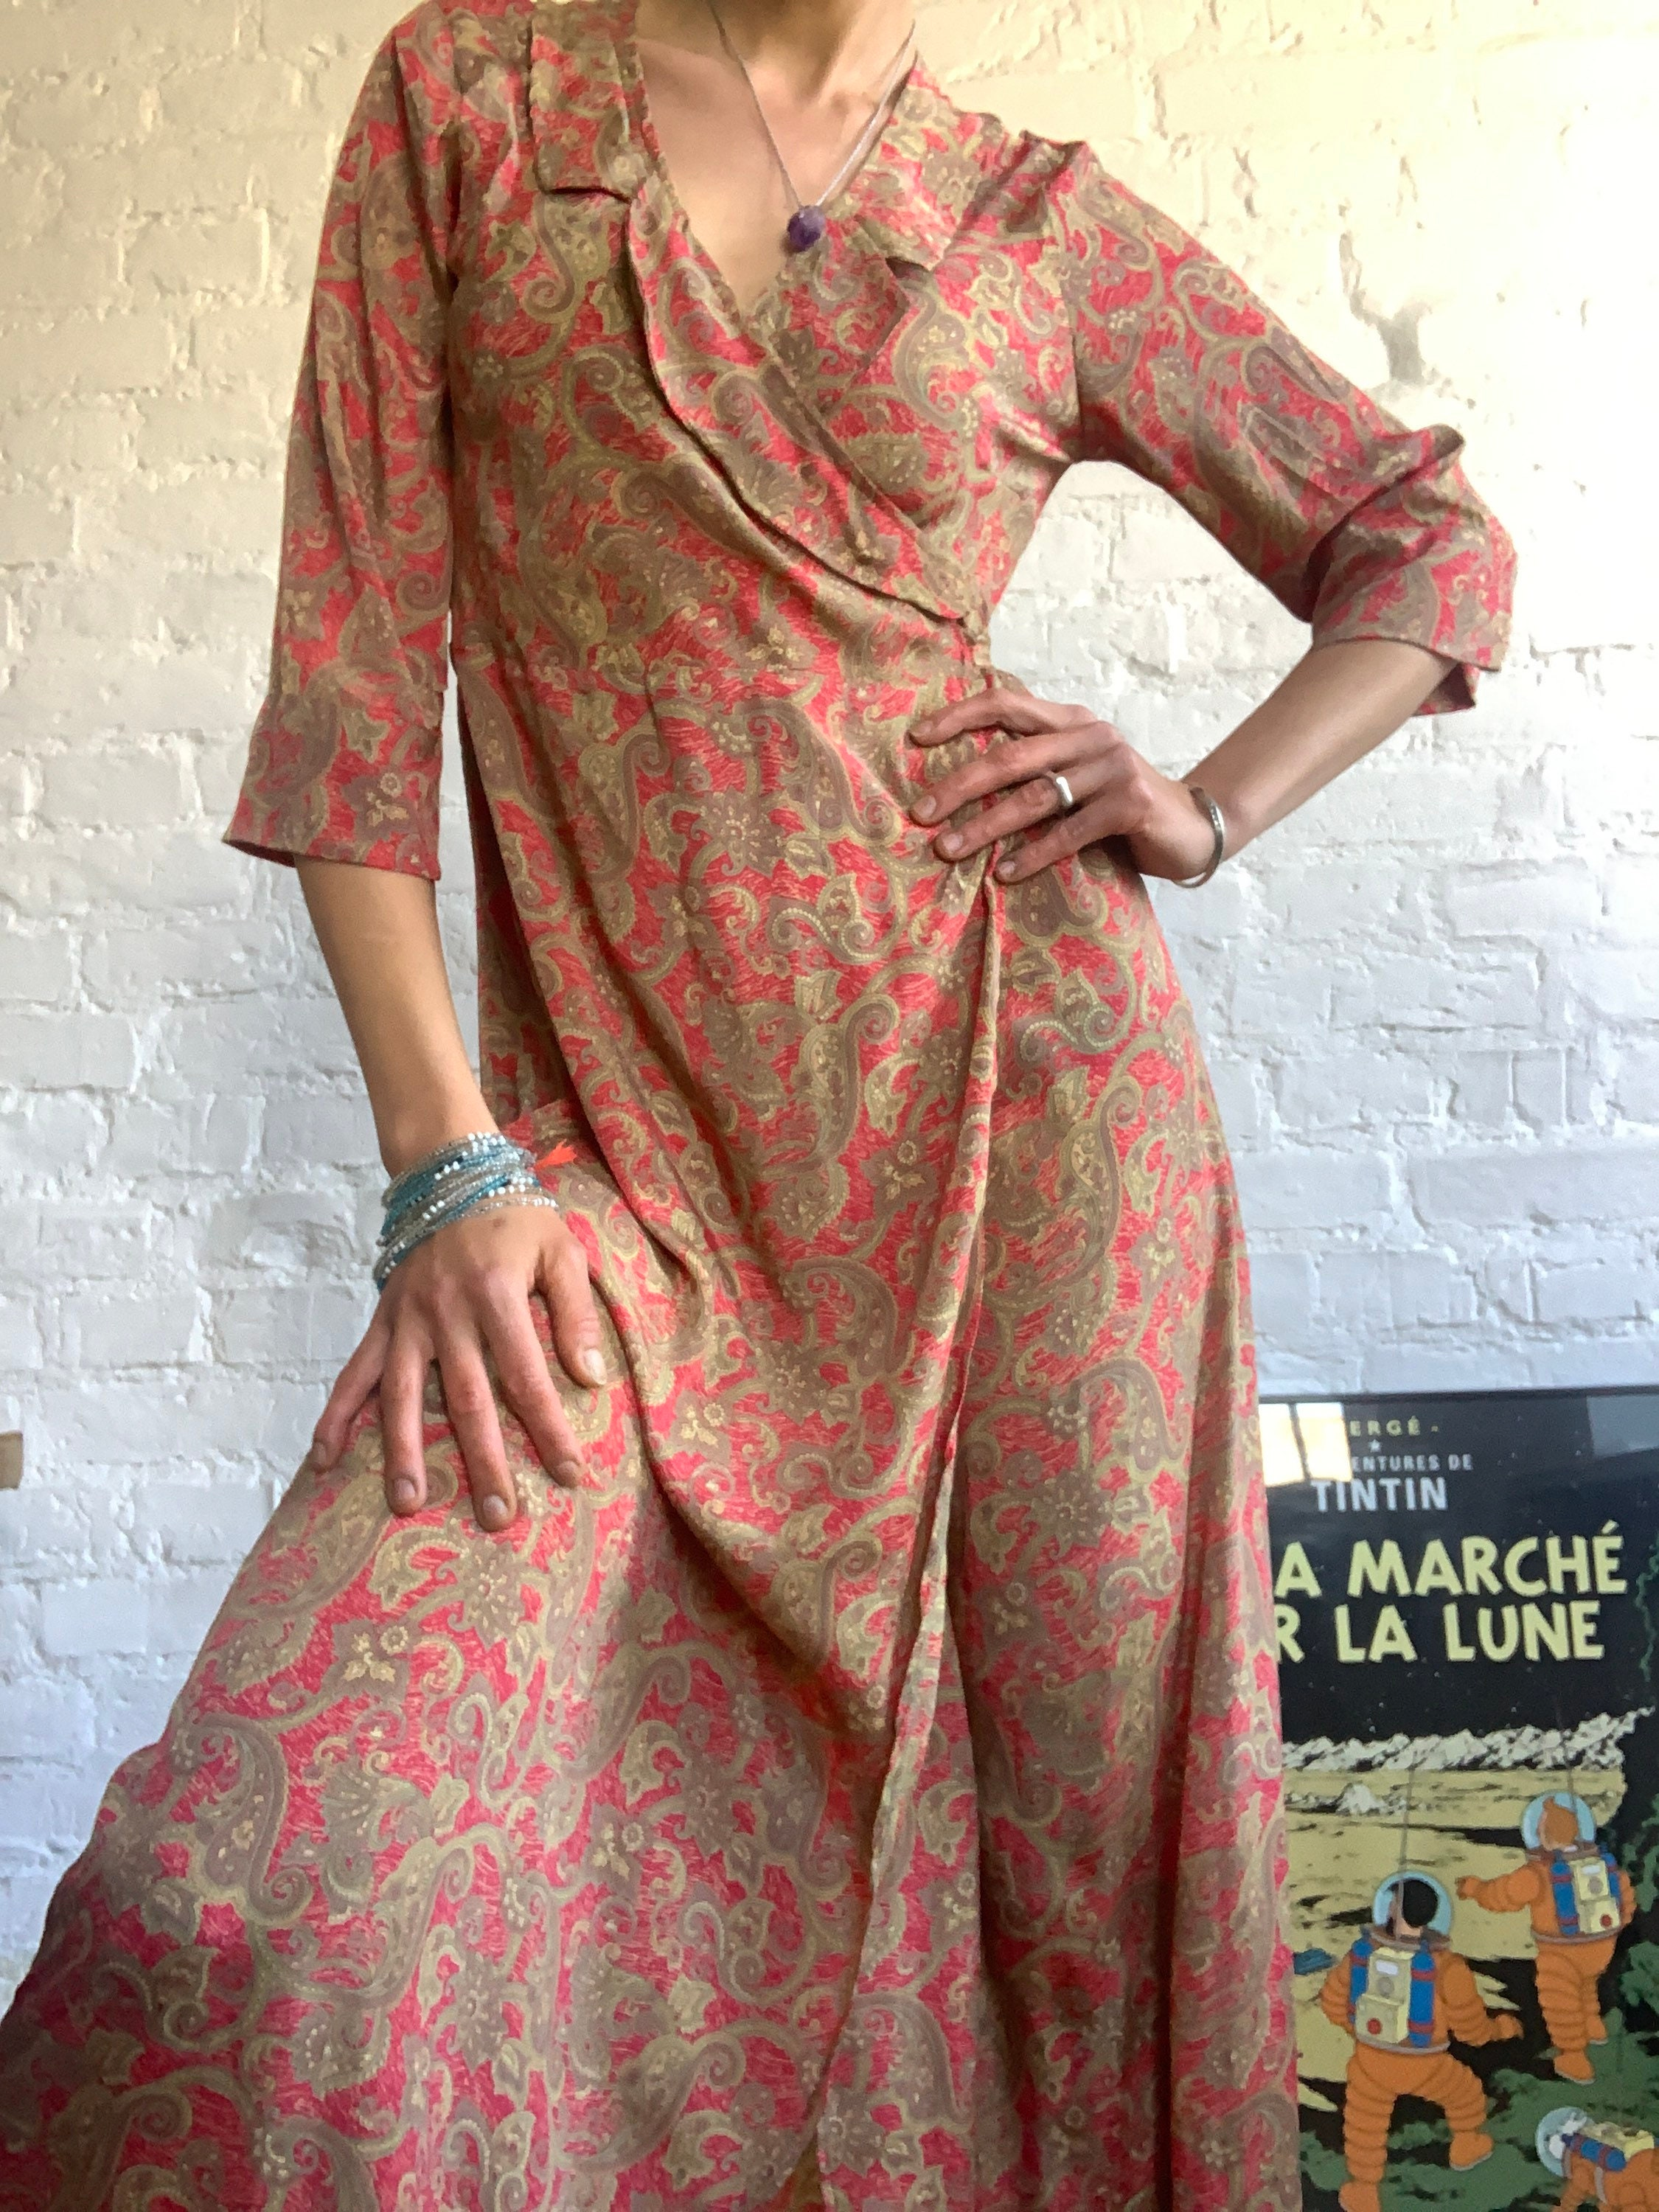 Vintage Aprons, Retro Aprons, Old Fashioned Aprons & Patterns Brown Floral A Line Wrap Tie Casual Bohemian Maxi Apron Dress Summer Vintage Silk Flare 34 Sleeve Everyday Rustic Comfy Day Petite $63.20 AT vintagedancer.com